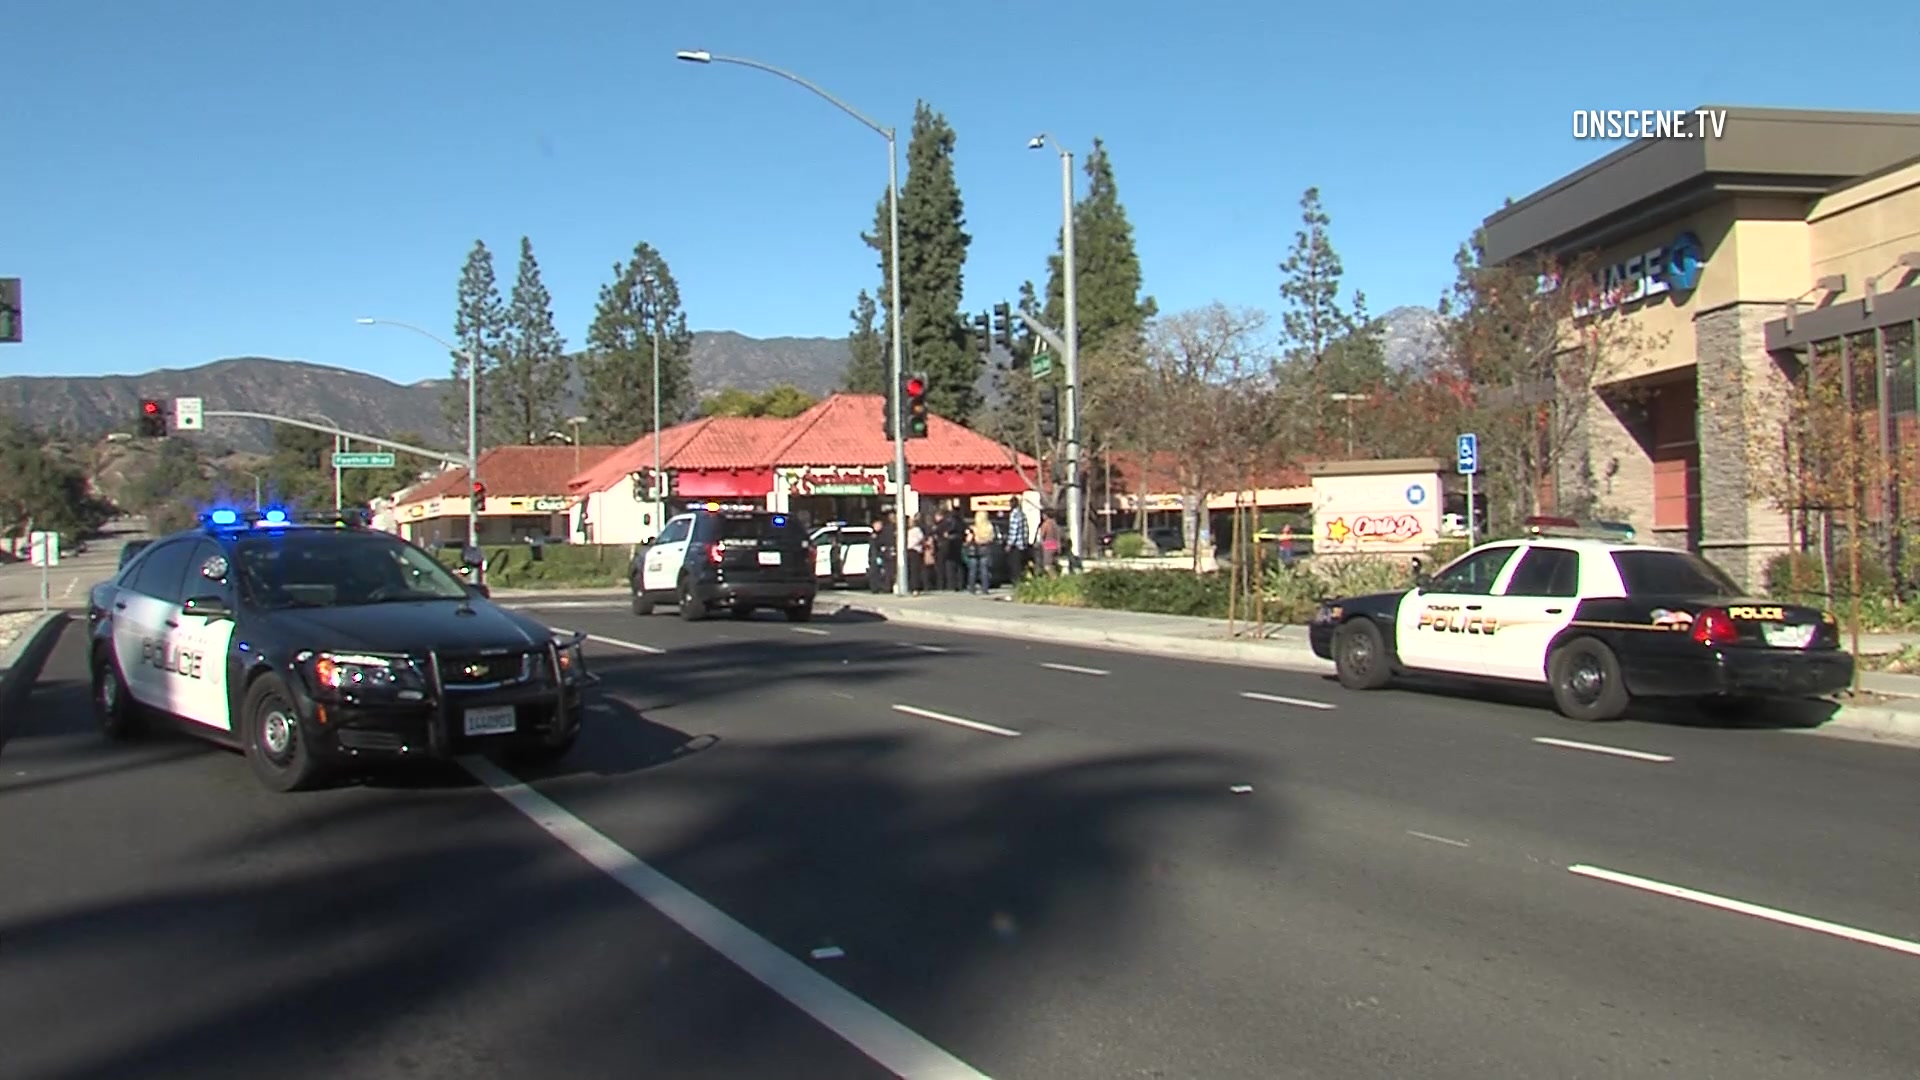 Road-rage violence or gang-related attack? Pomona police